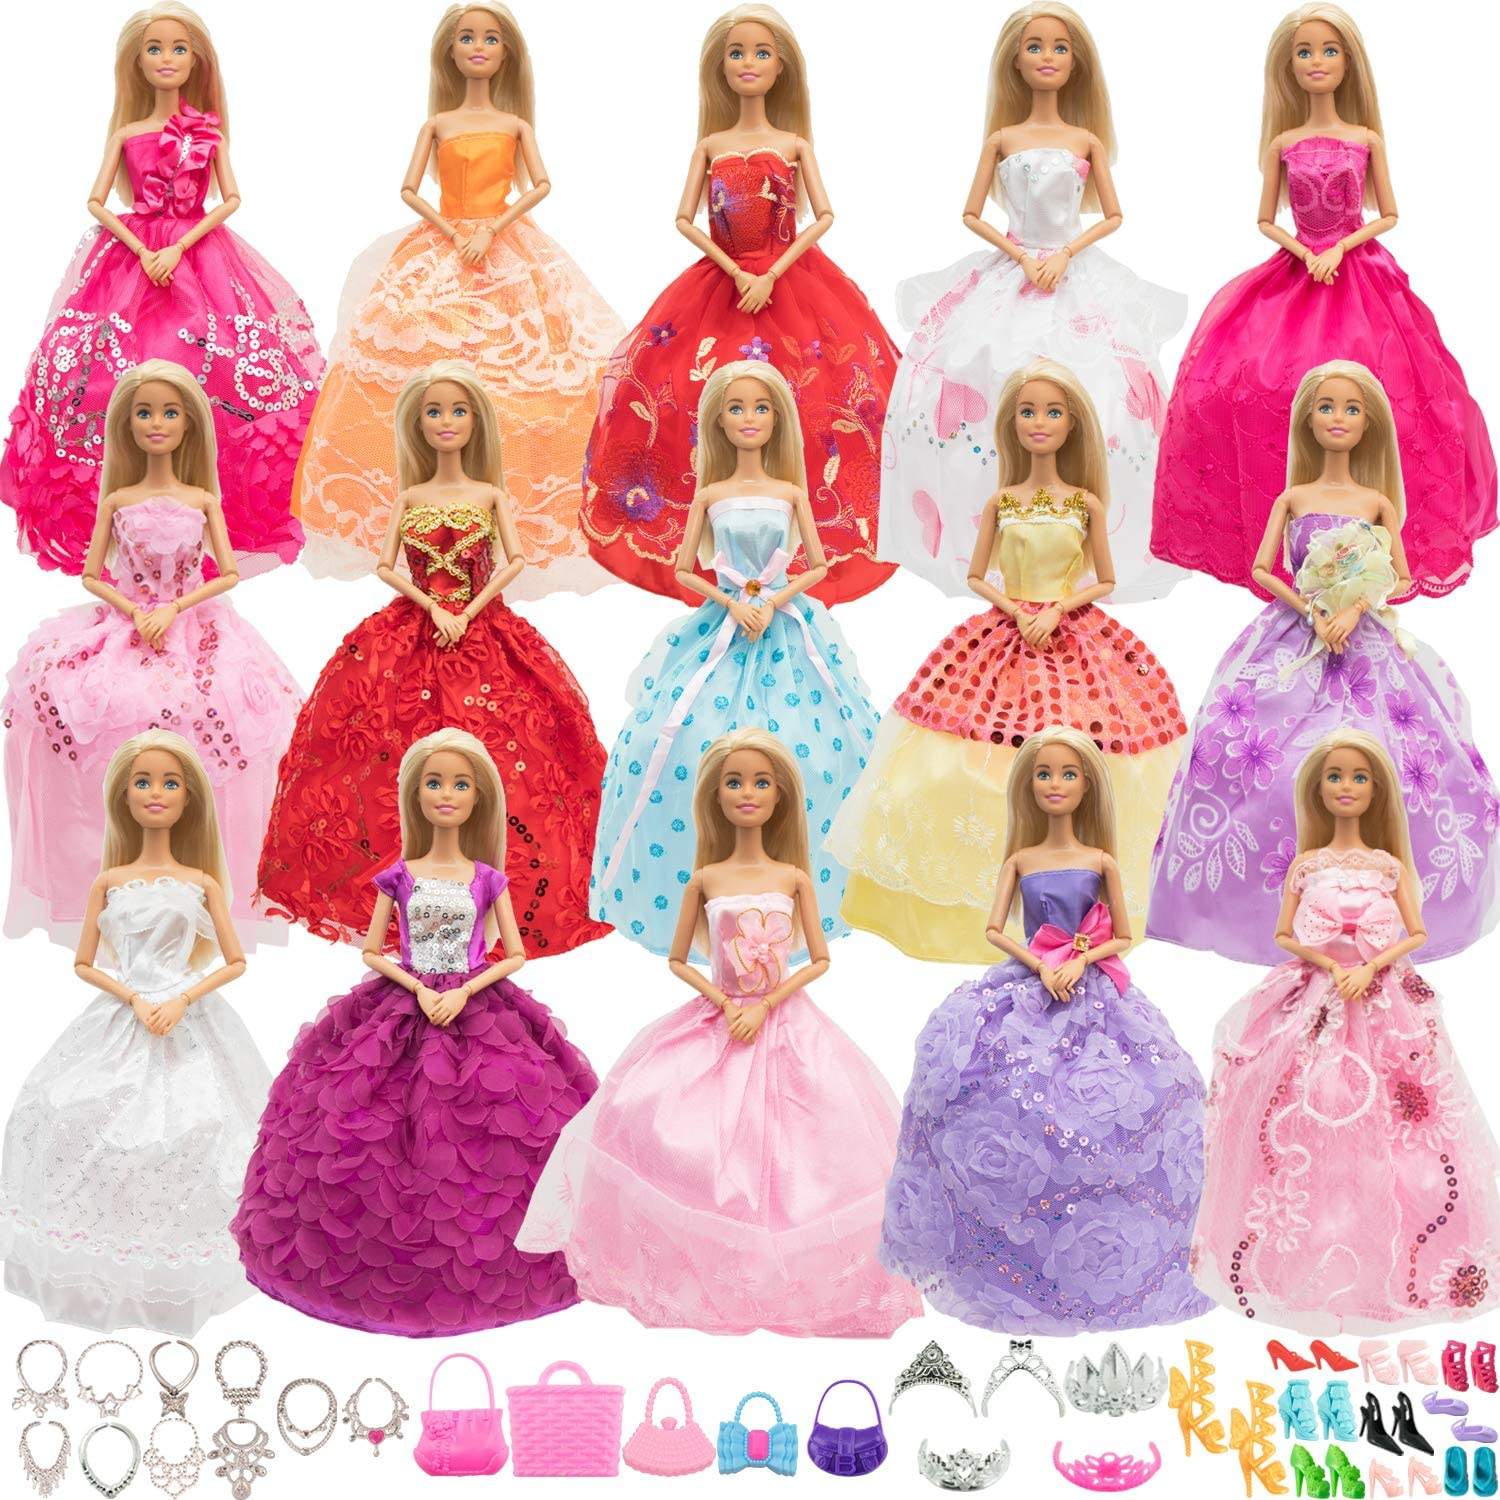 SOTOGO 55 Pieces Doll Clothes and Accessories for 11.5 Inch Girl Doll Include 15 Sets Fashion Handmade Doll Dresses Wedding Dresses Evening Dresses Party Gowns Outfit and 40 Pieces Doll Accessories